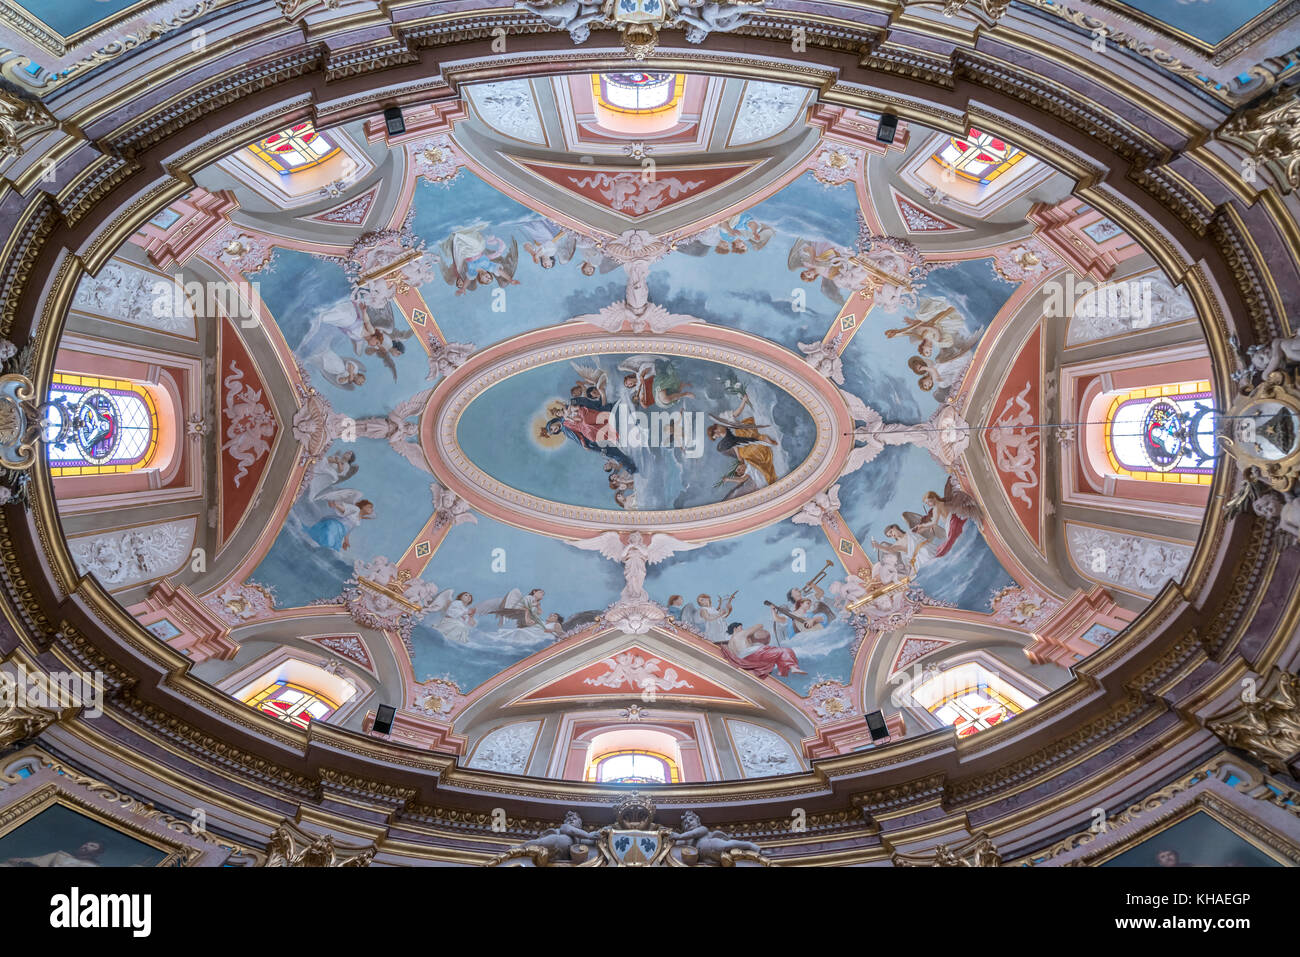 Ceiling painting, dome, Carmelite church, Mdina, Malta Stock Photo